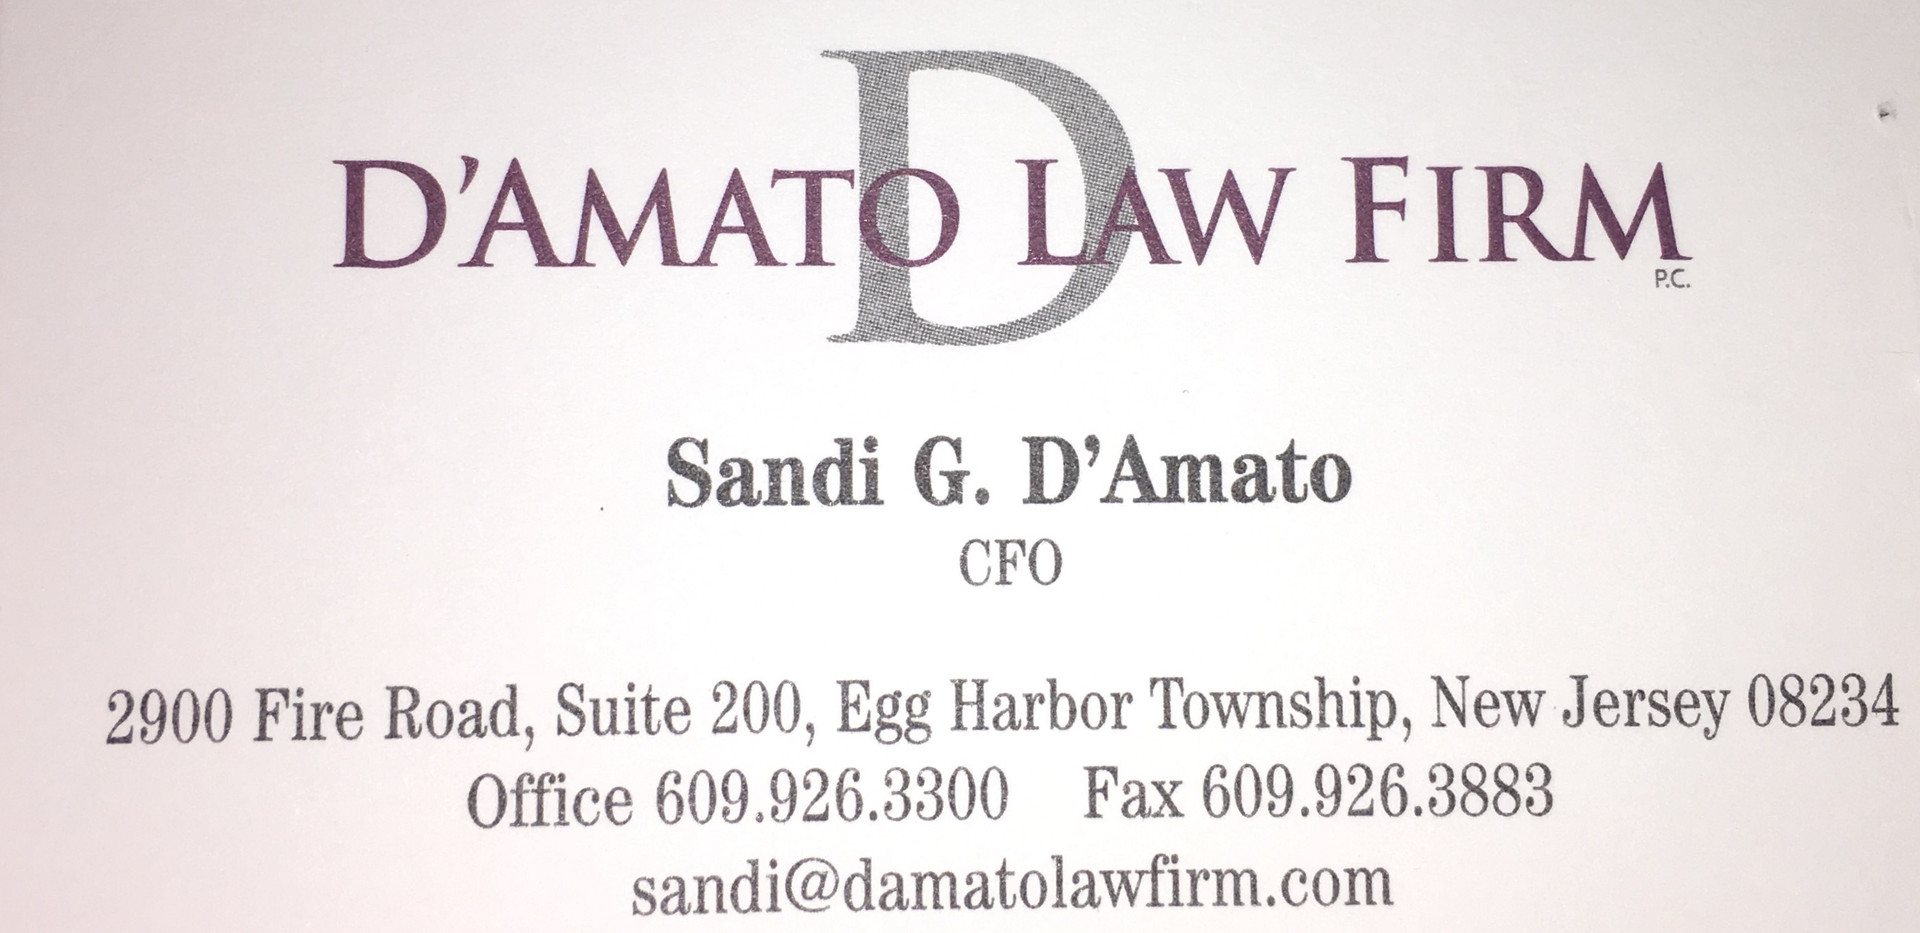 D Amato Law Firm.jpg